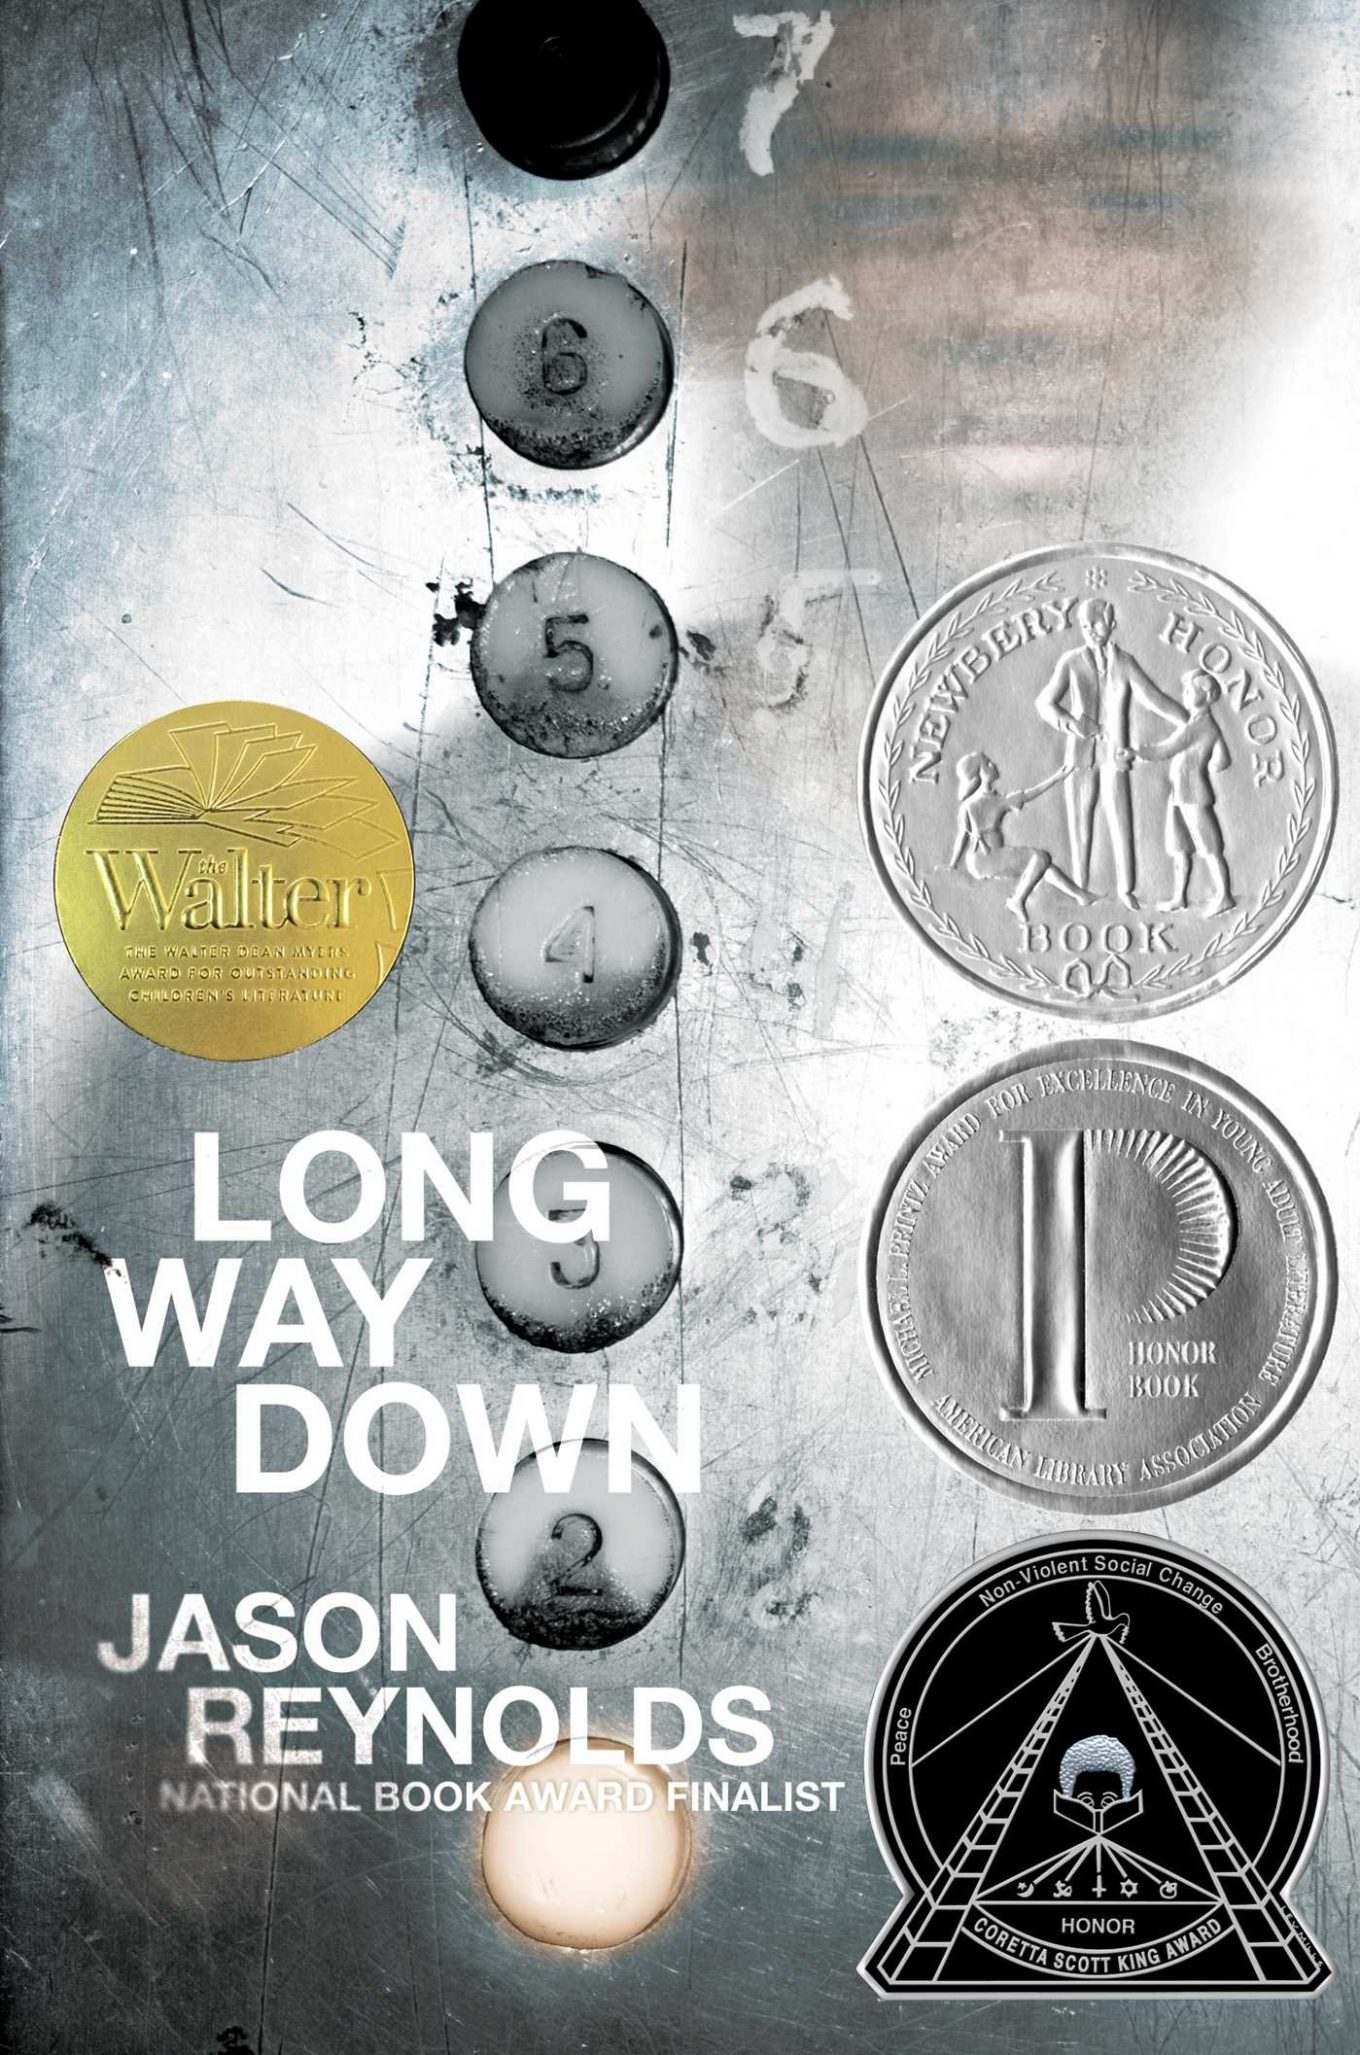 Long Way Down by Jason Reynolds, Reviewed by Dylan Mondrus